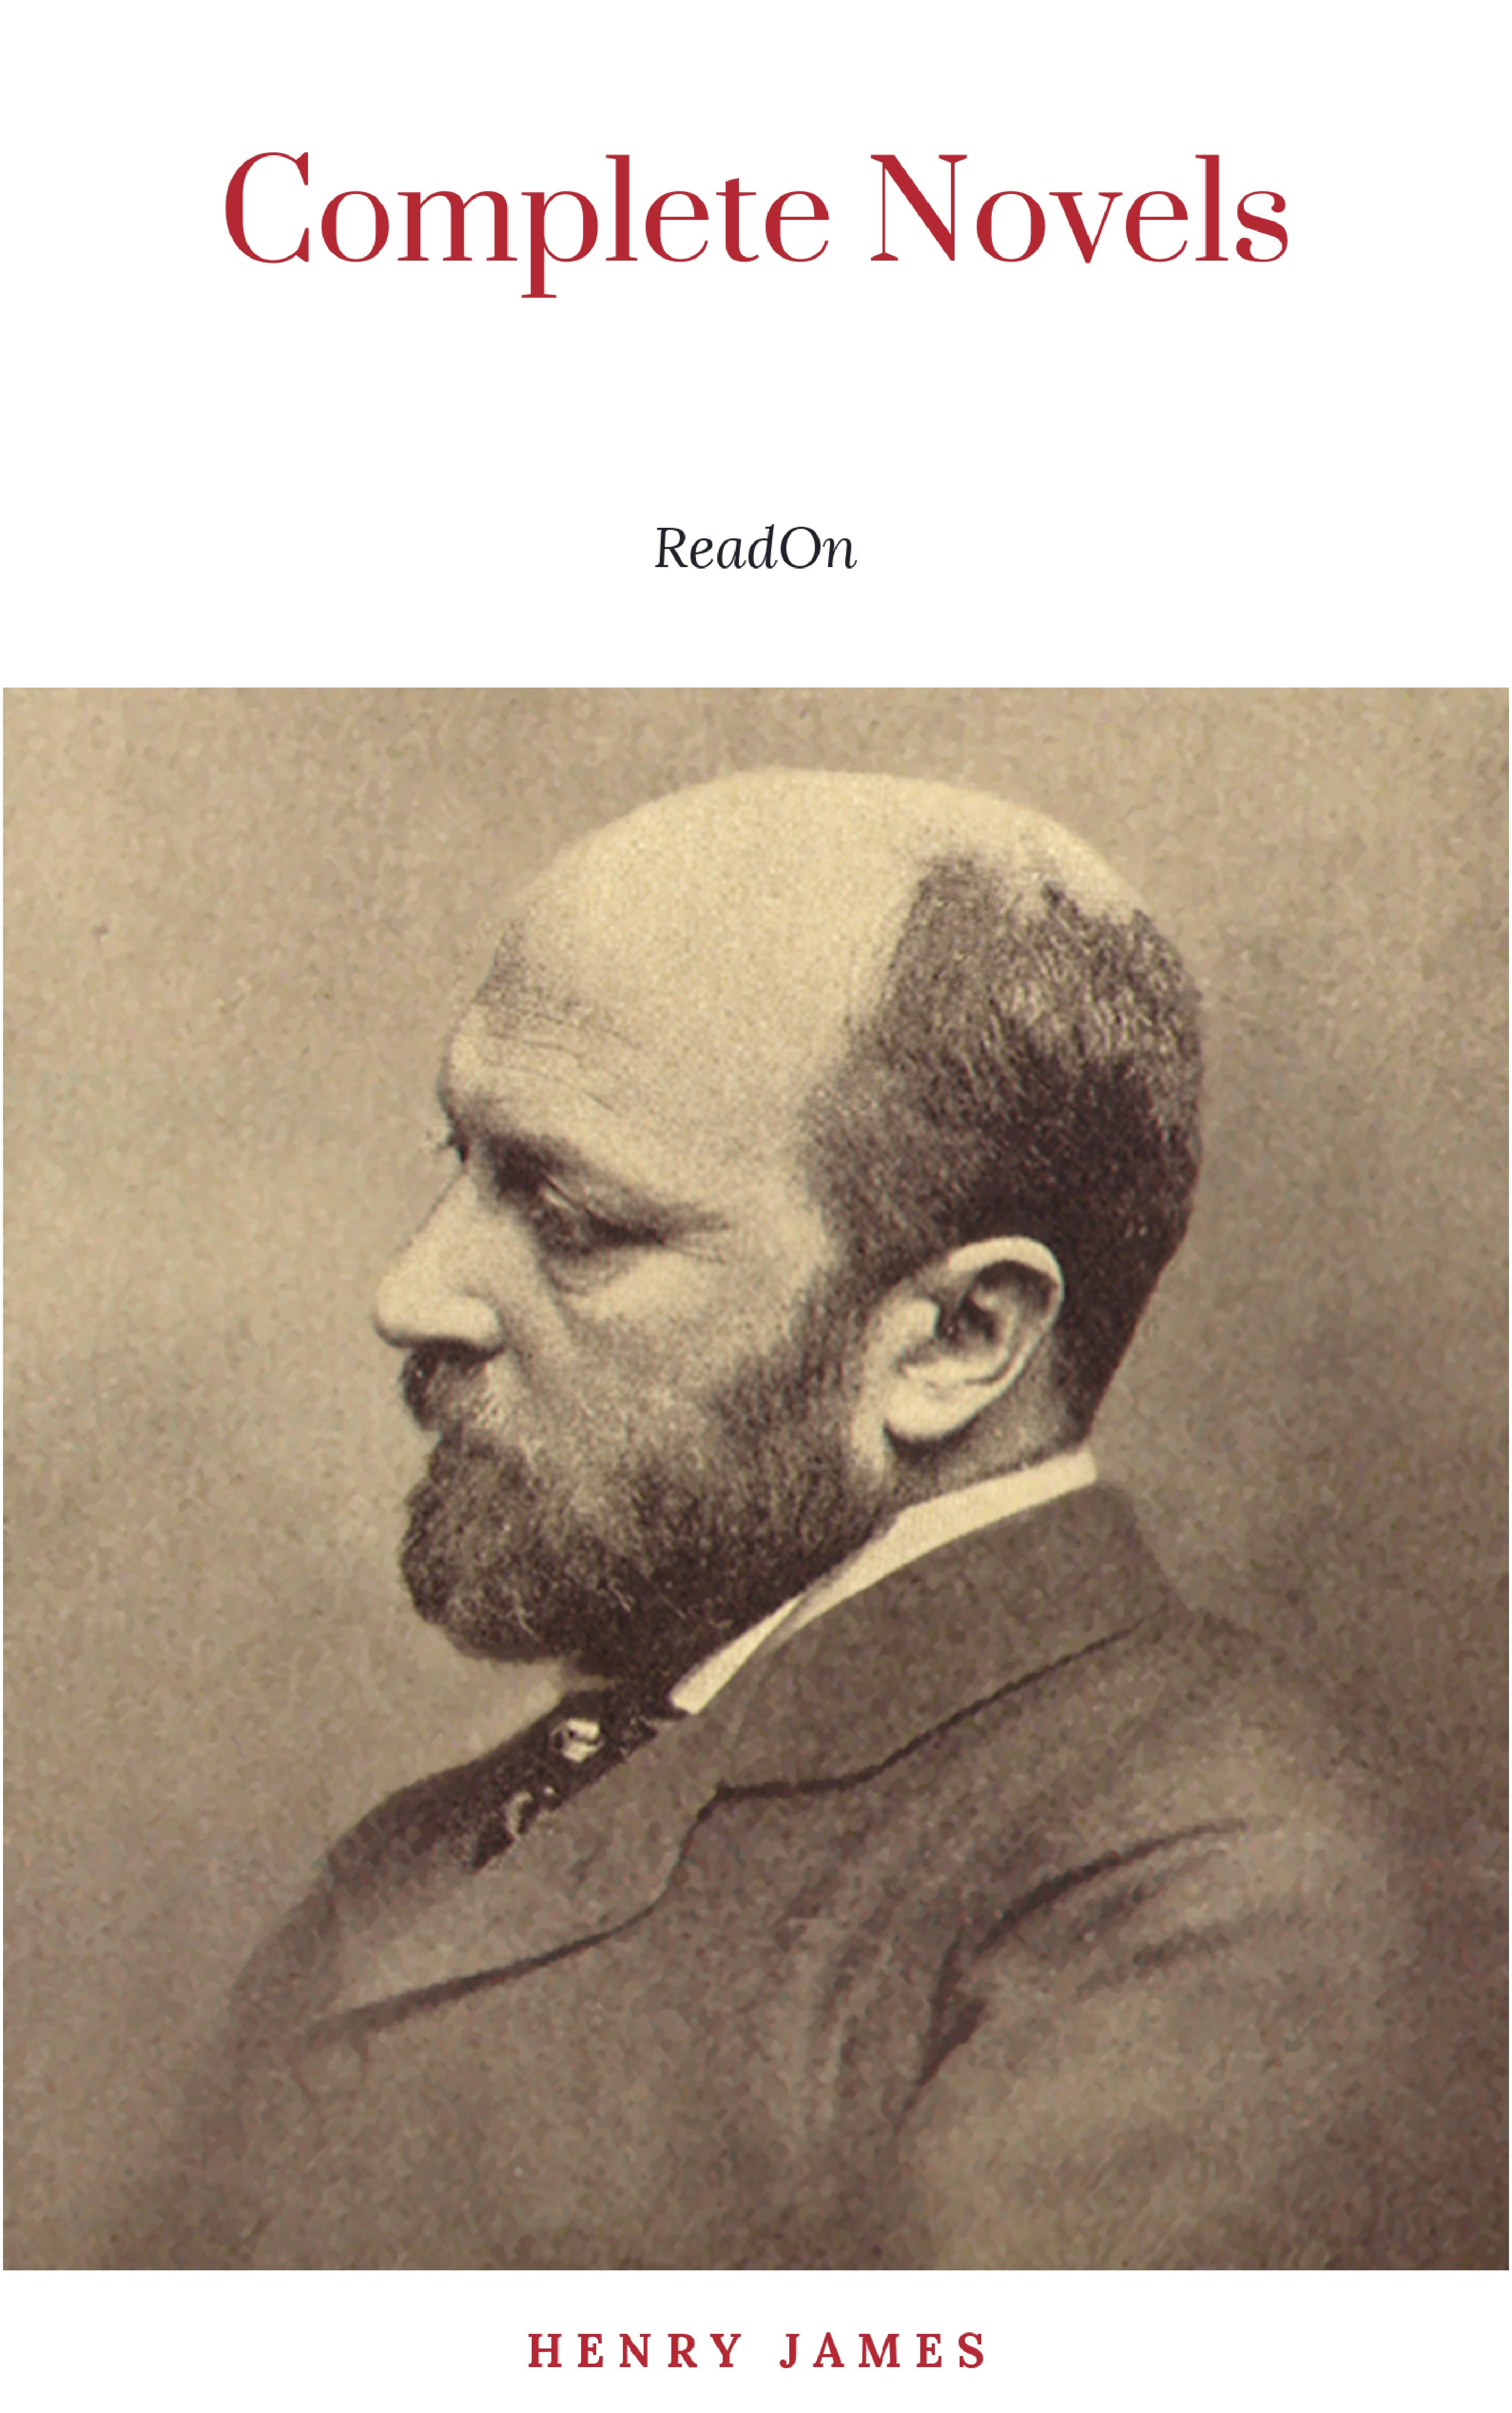 Henry Foss James The Complete Novels of Henry James - All 24 Books in One Edition: The Portrait of a Lady, The Wings of the Dove, What Maisie Knew, The American, The Bostonian, ... The Ambassadors, Washington Square and more henry foss james the ambassadors the unabridged edition